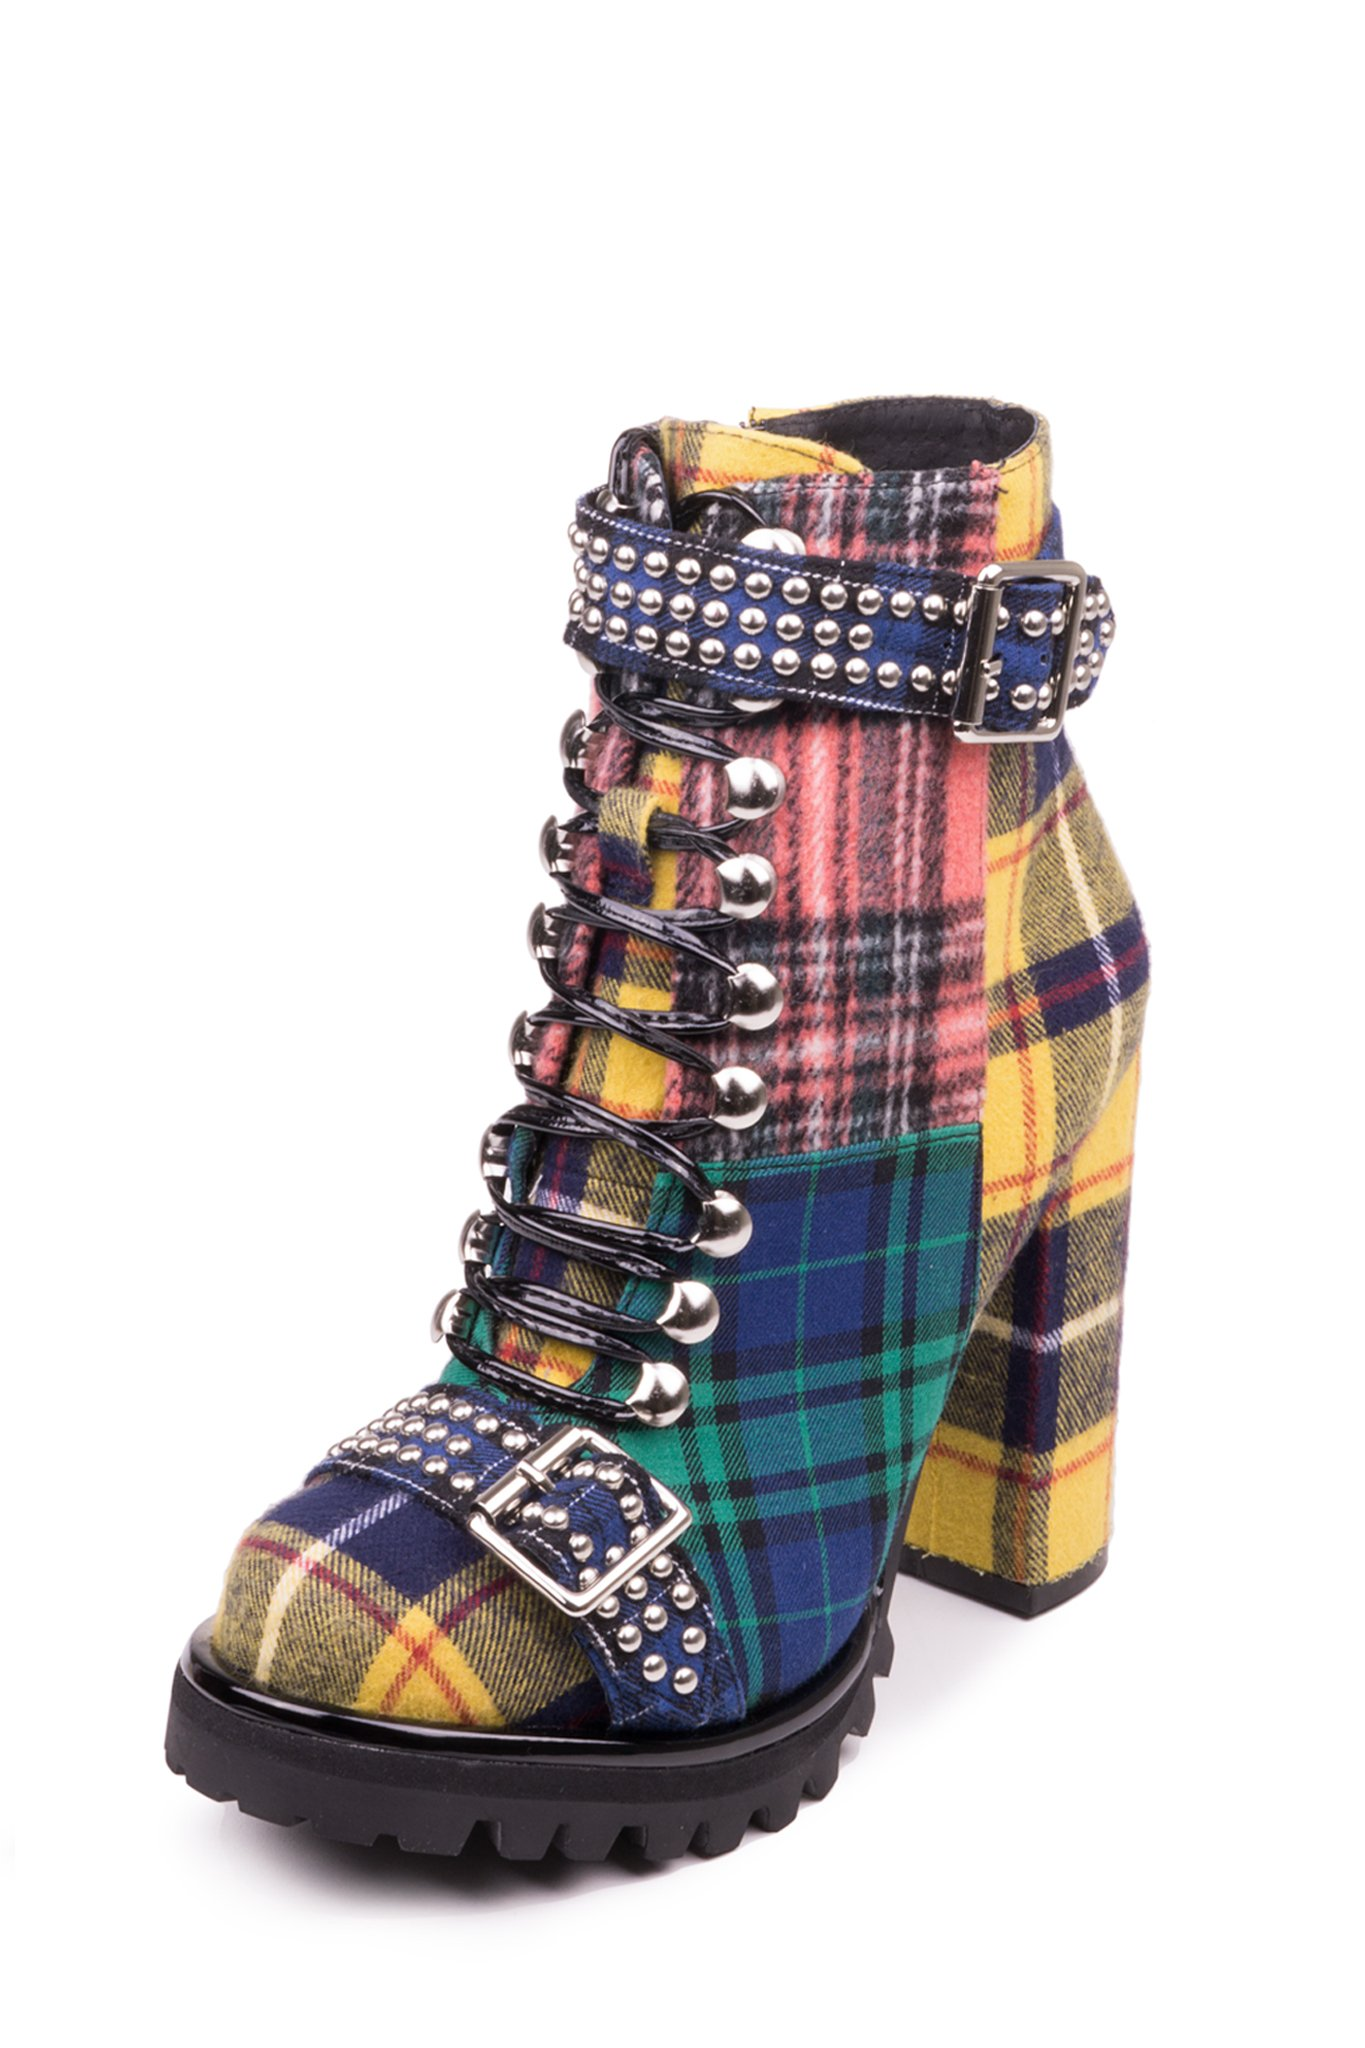 ecc0721964c2 Lace-up lug sole heeled bootie. - Fits true to size - Measurements taken  from size 6 - 4.25